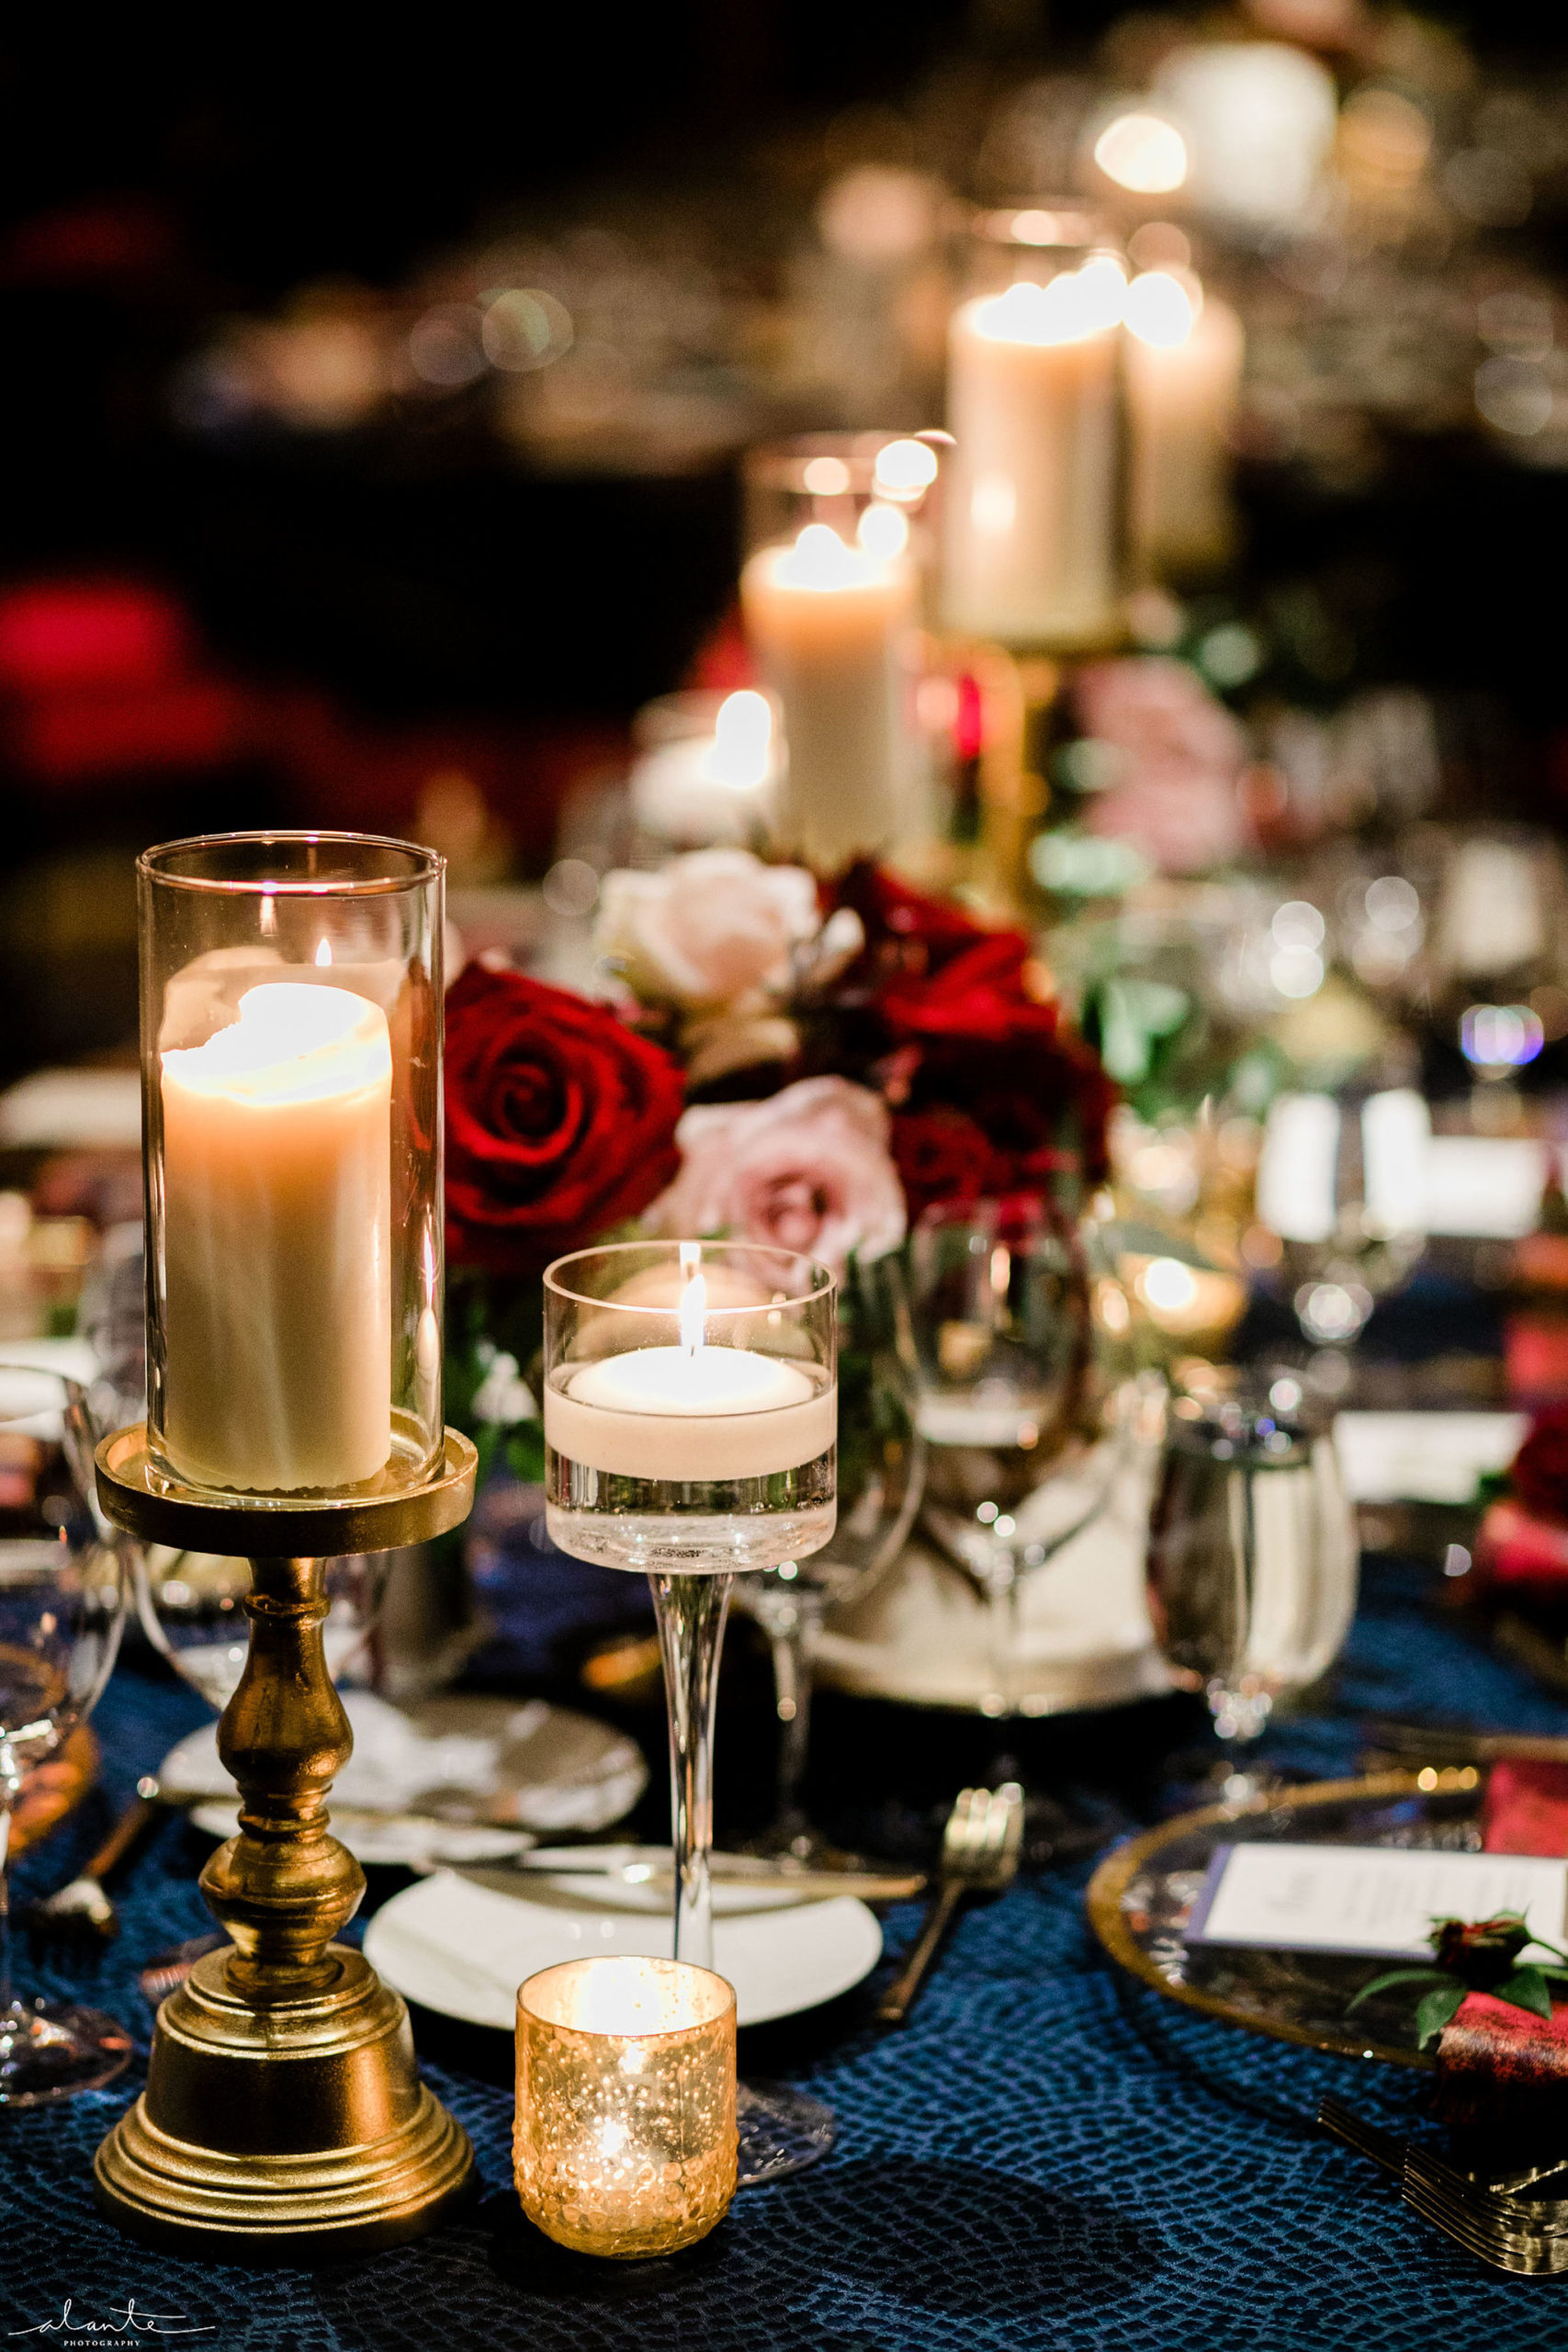 Candlelit tabletop with a red rose centerpiece on navy blue linens for a winter wedding reception by Flora Nova Design Seattle